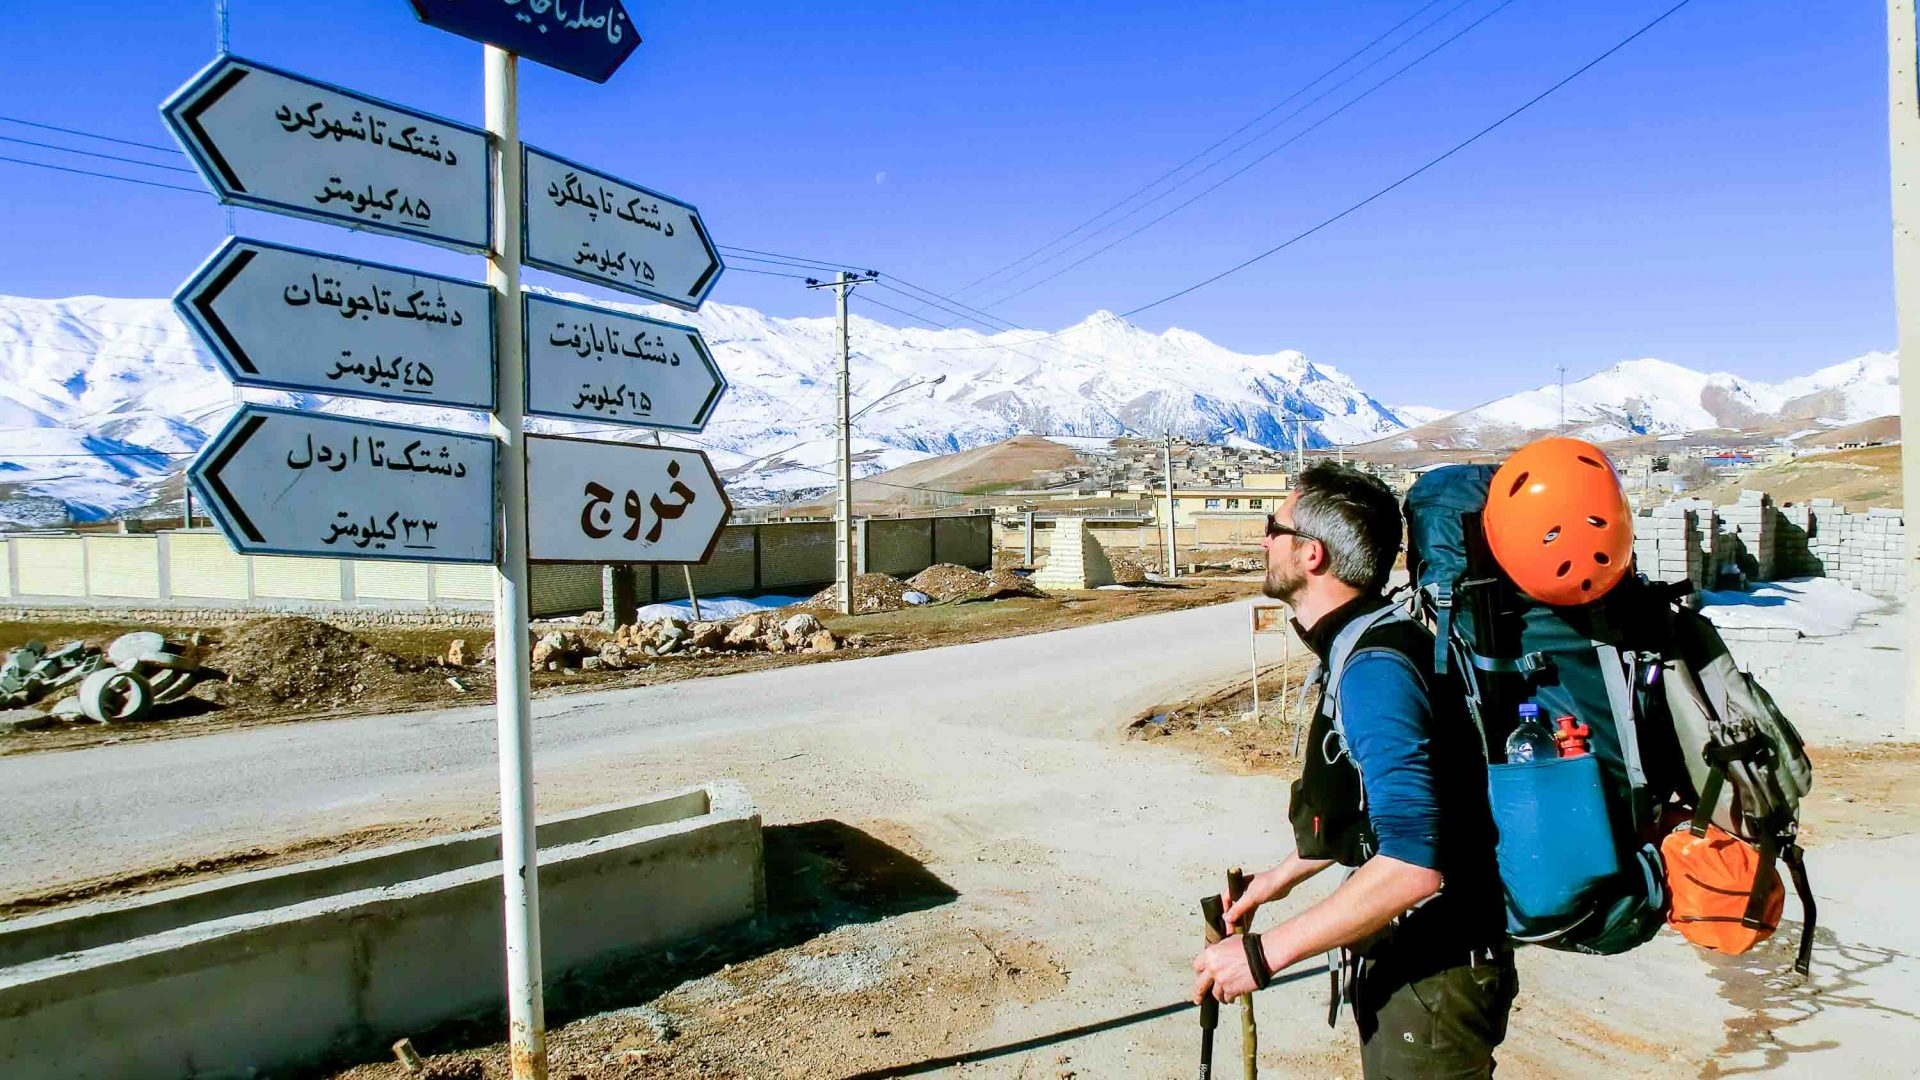 Tom follows the Farsi road signs.